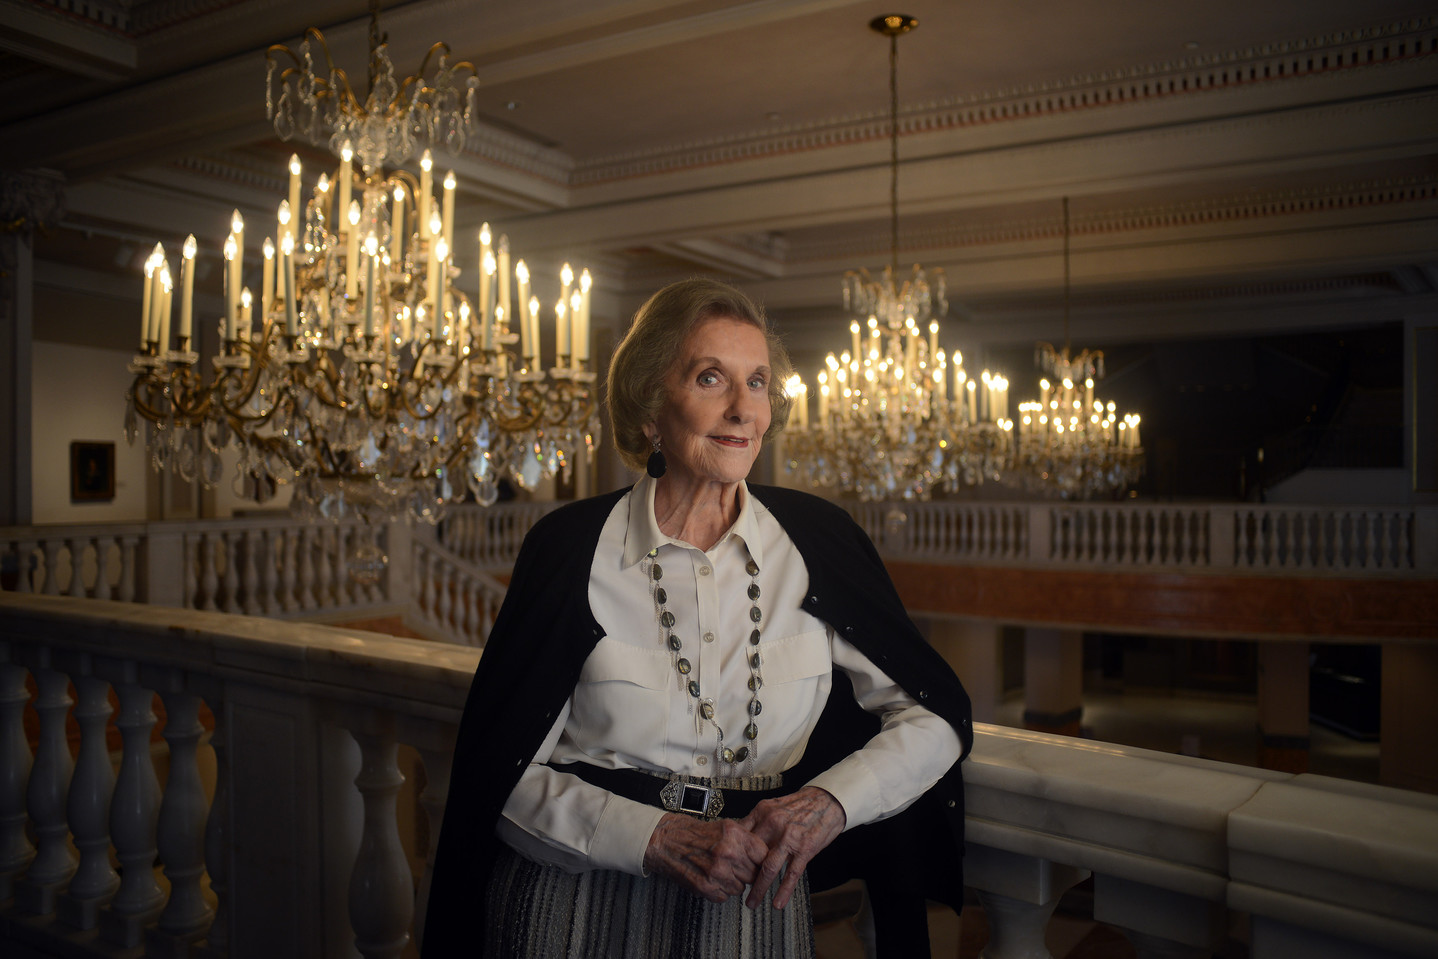 Wilhelmina Cole Holladay leans against a railing with a slight smile. She is a light-skinned, older woman with short, gray hair, and she wears a collared white shirt and black cardigan. Ornate chandeliers can be seen behind her.